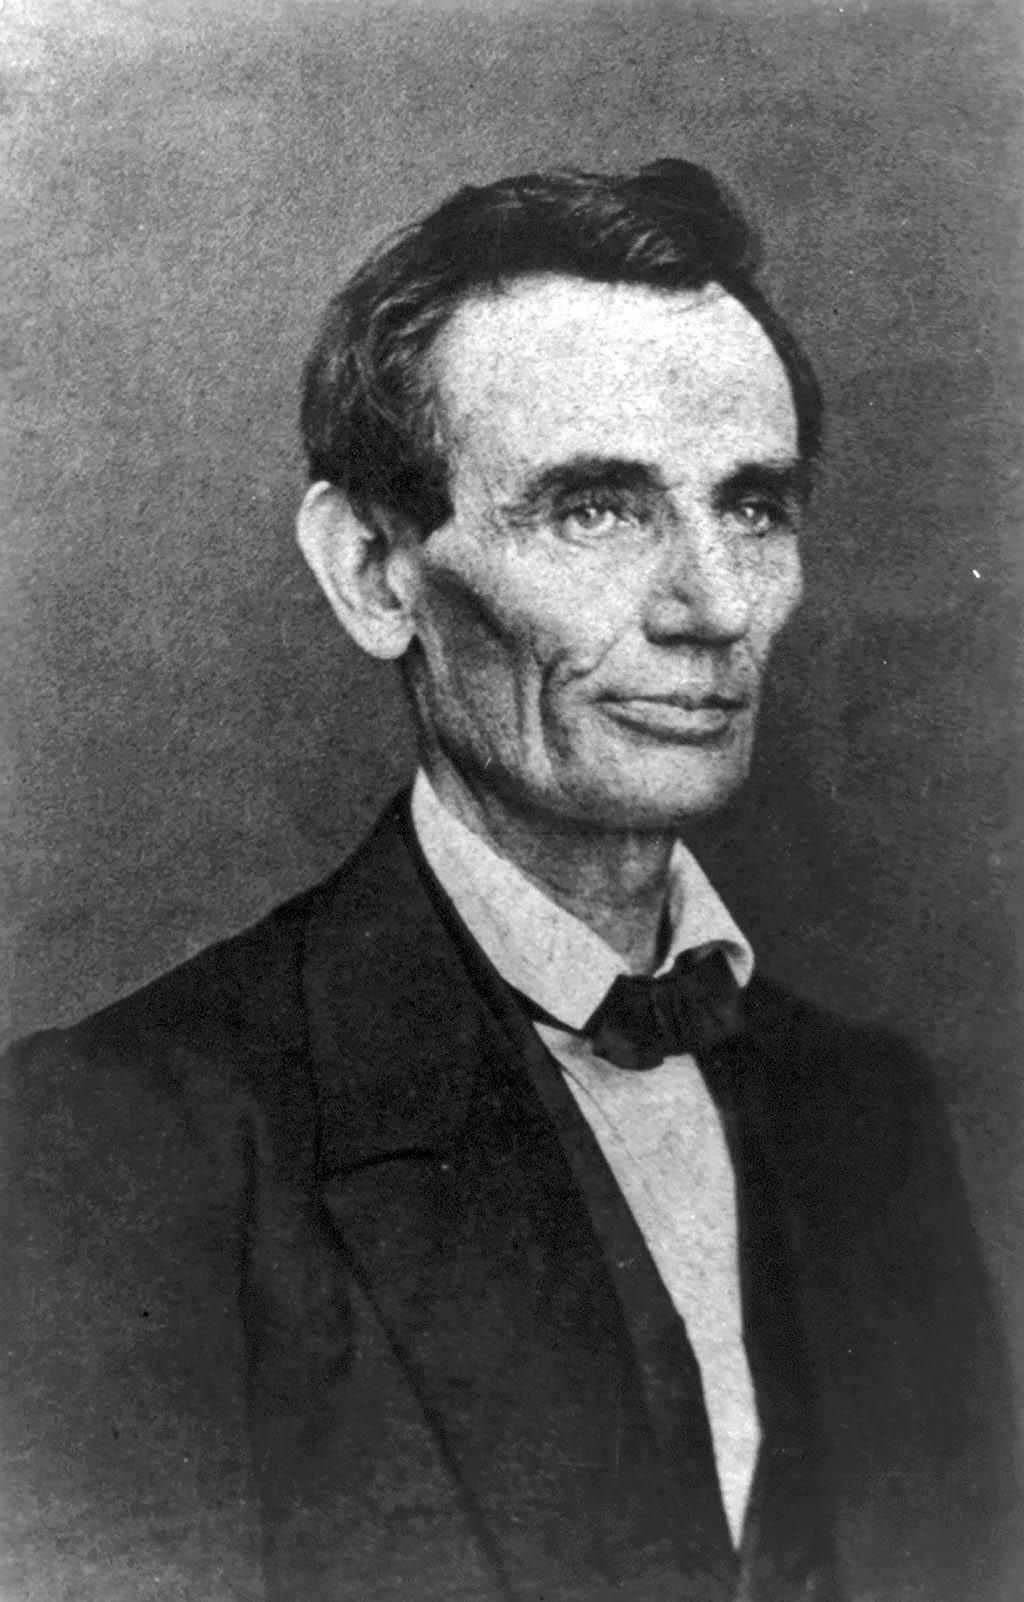 News Of November 6 Election With Abraham Lincoln Ahead Reaches Olympia On November 22 1860